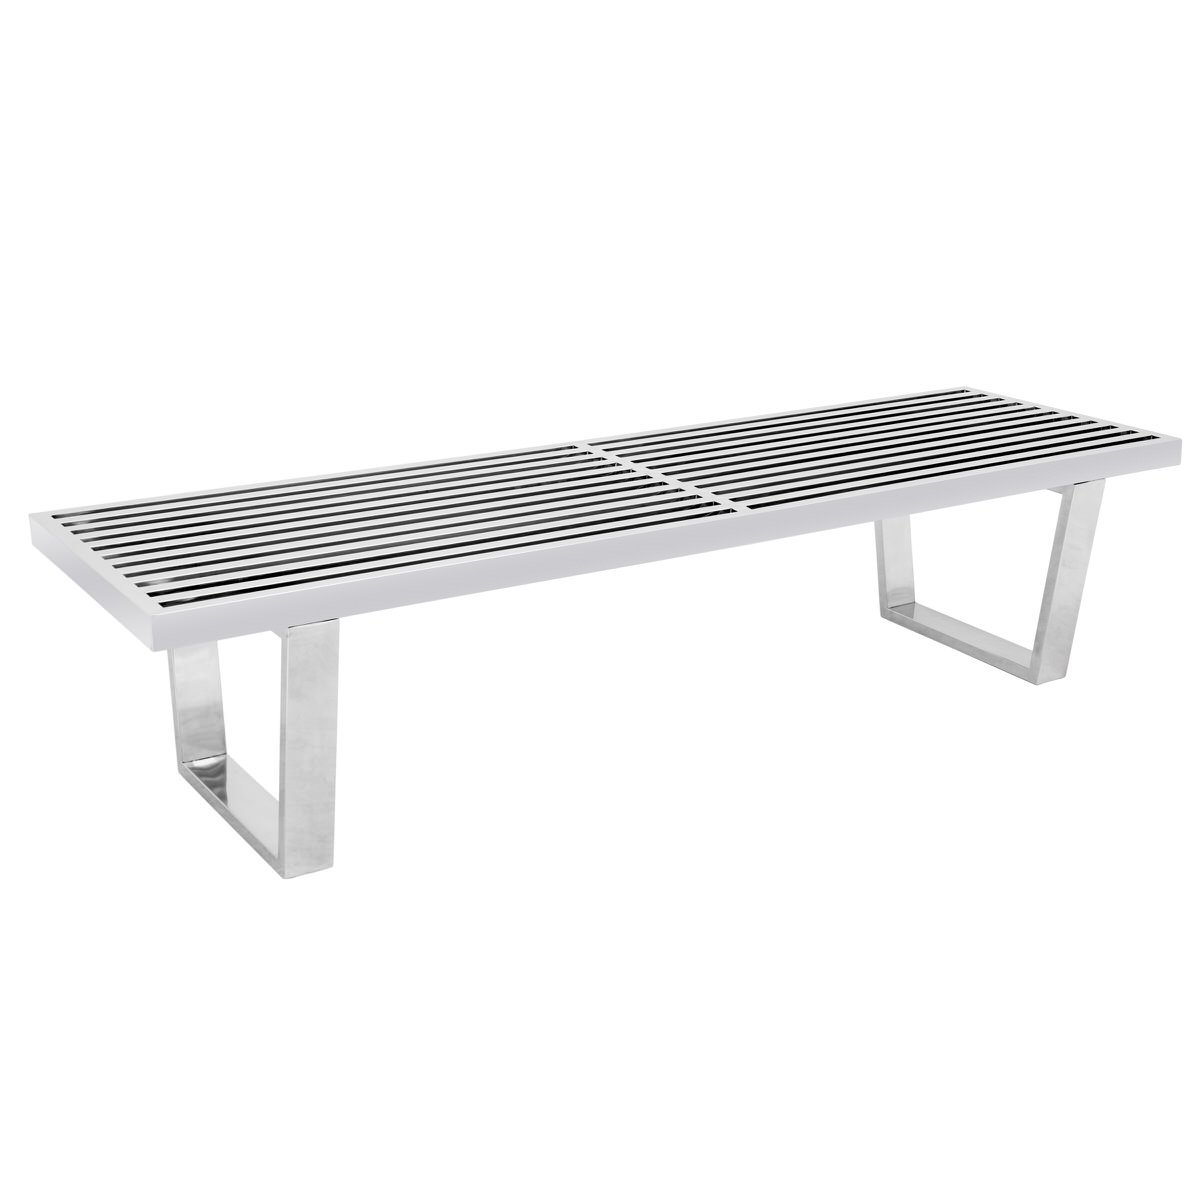 Phenomenal Nelson Mid Century Inwood Silver Platform Bench 5 Feet By Leisuremod Gmtry Best Dining Table And Chair Ideas Images Gmtryco